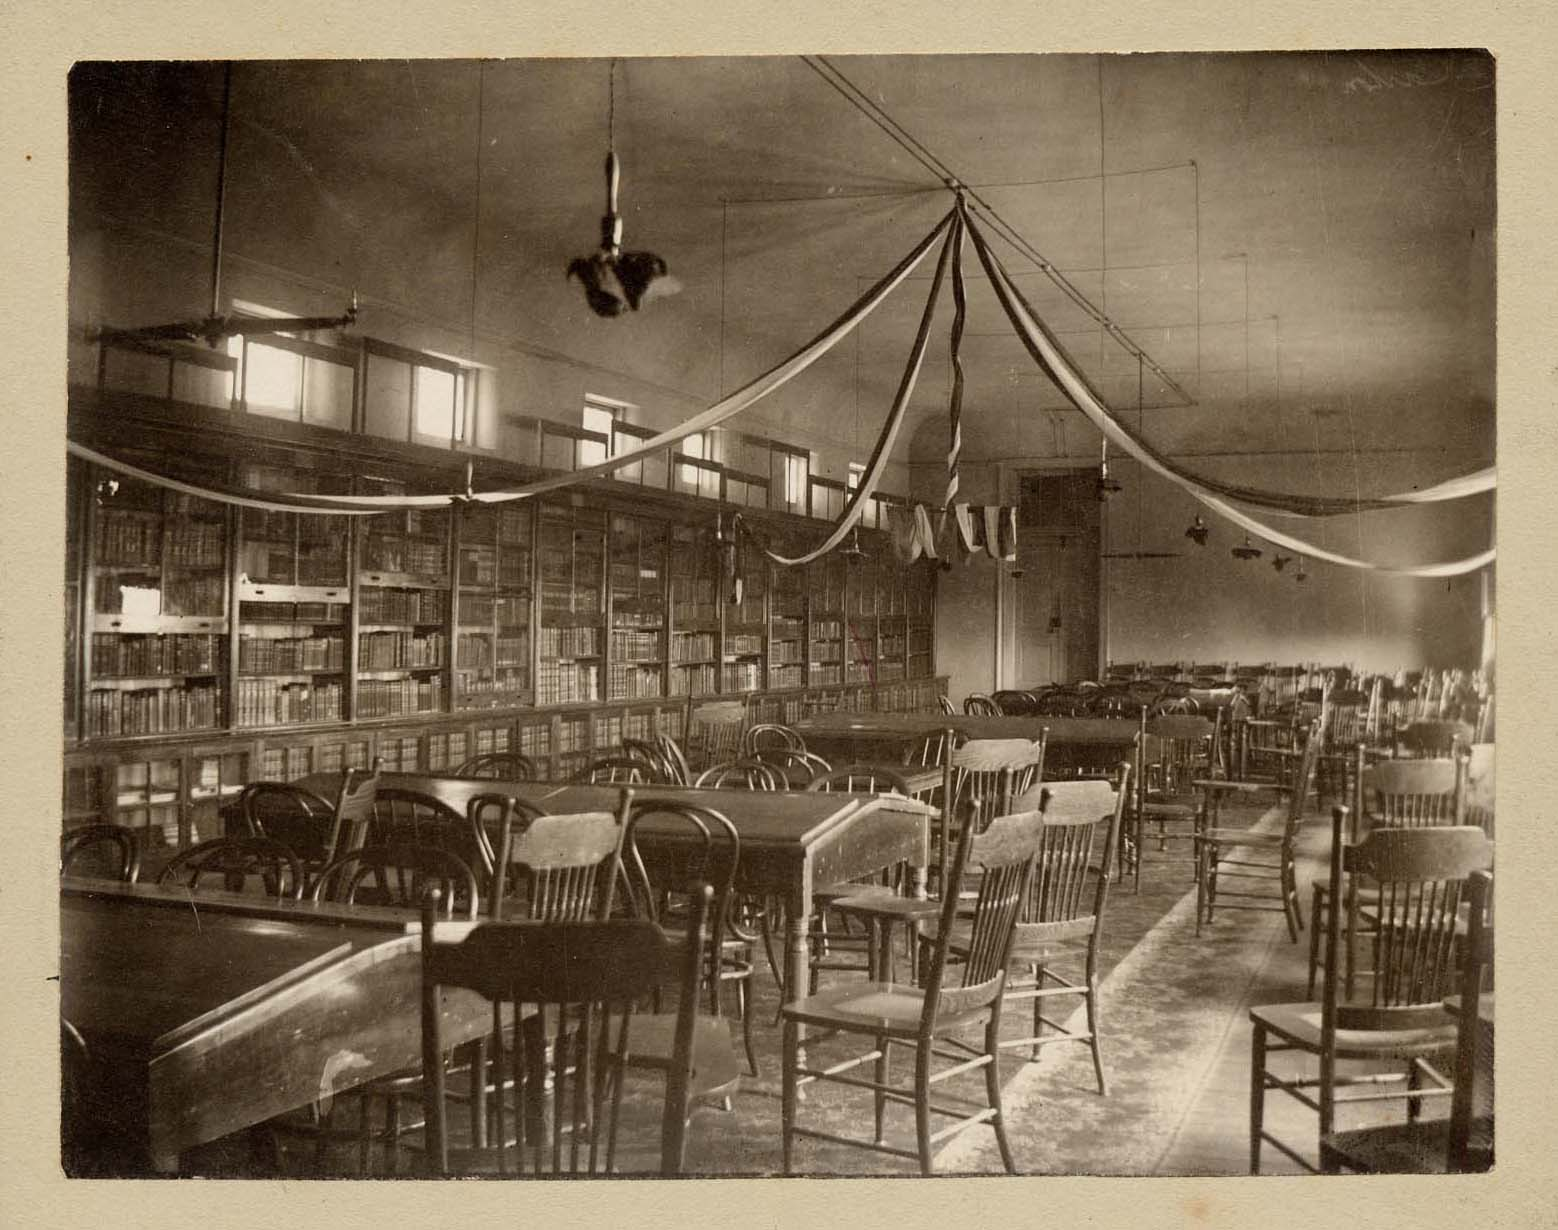 Photograph of Library, circa 1900.